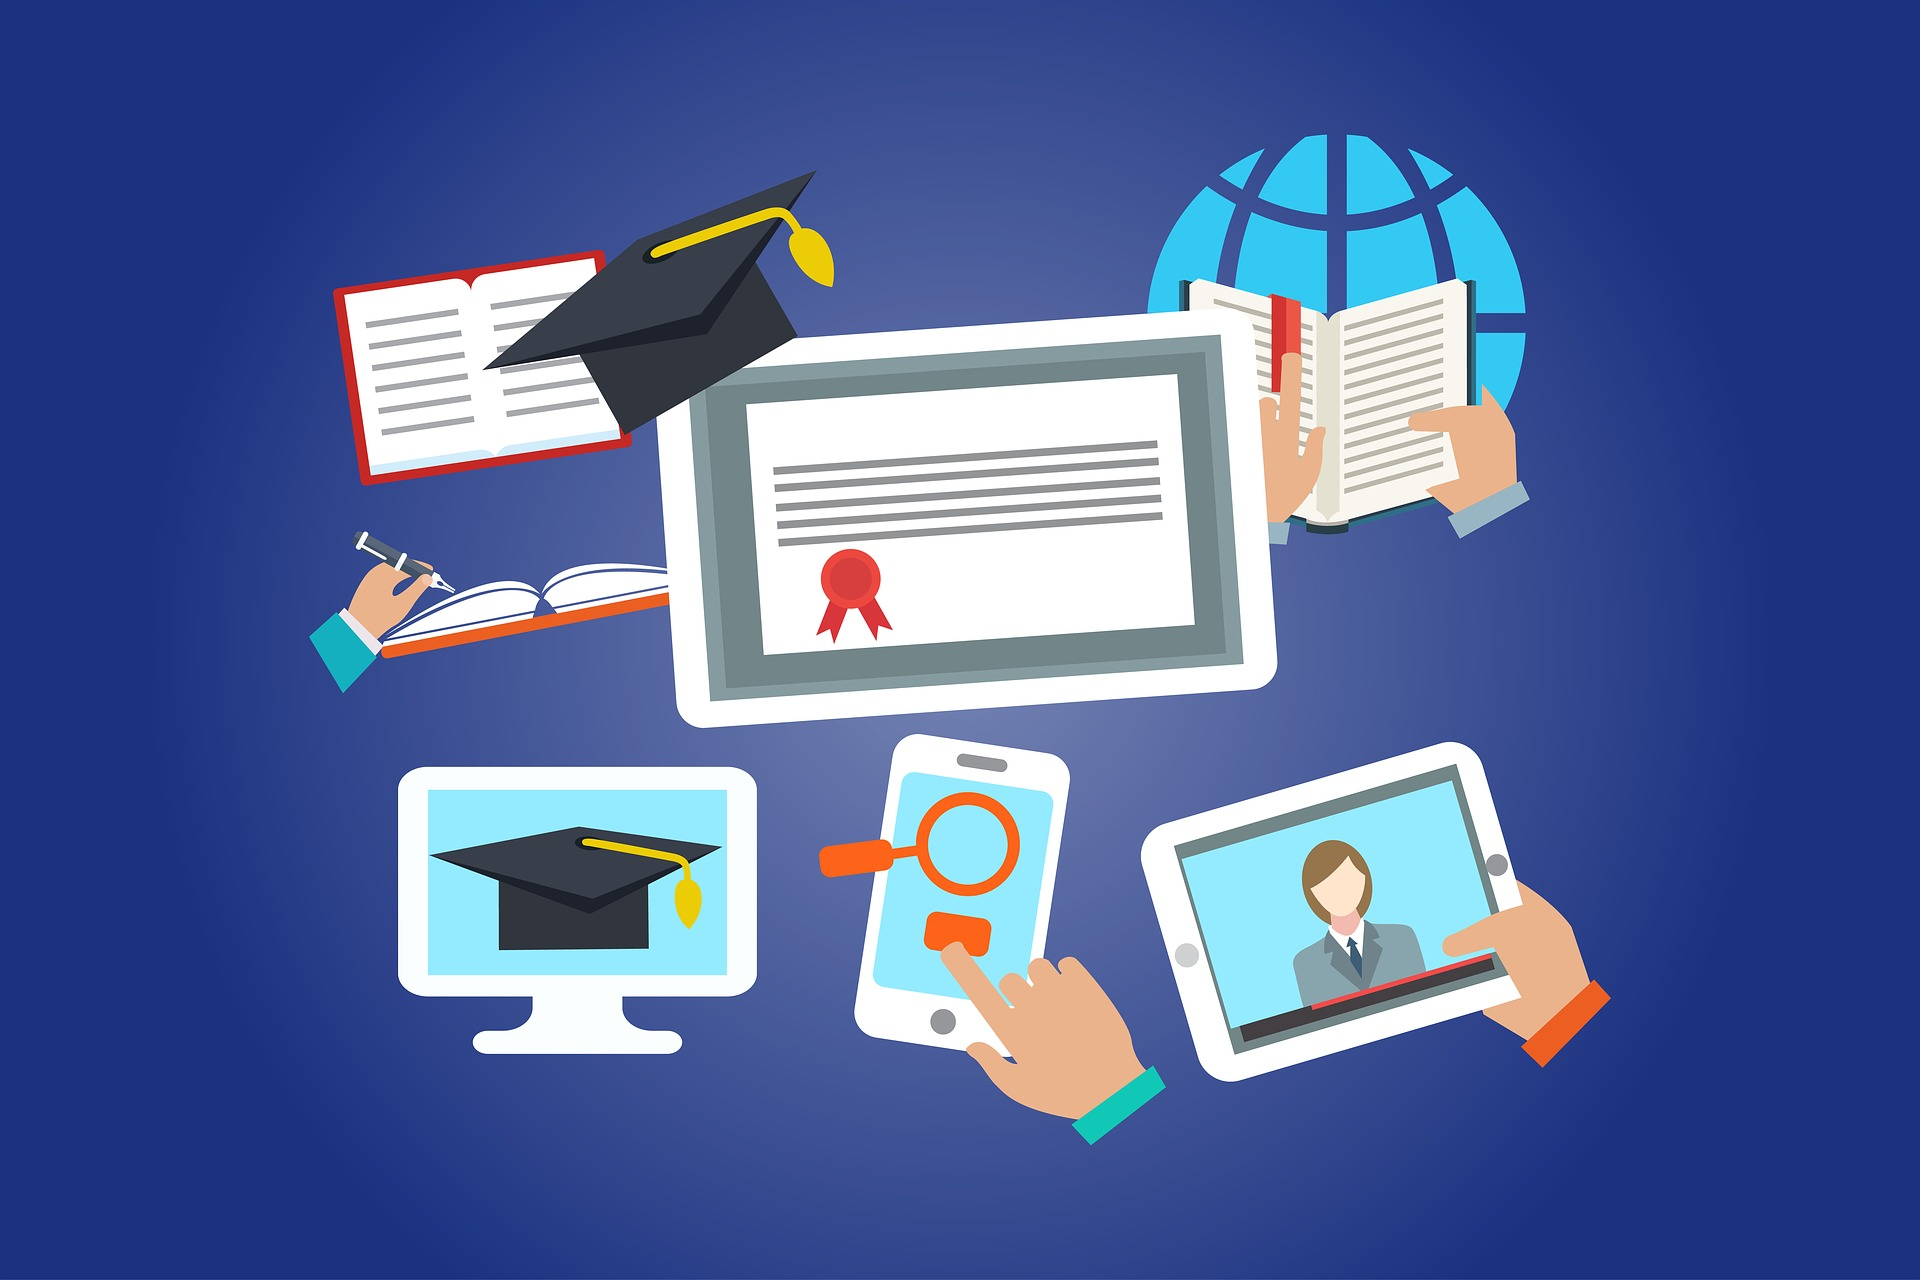 Differenza tra diploma in sede e diploma online